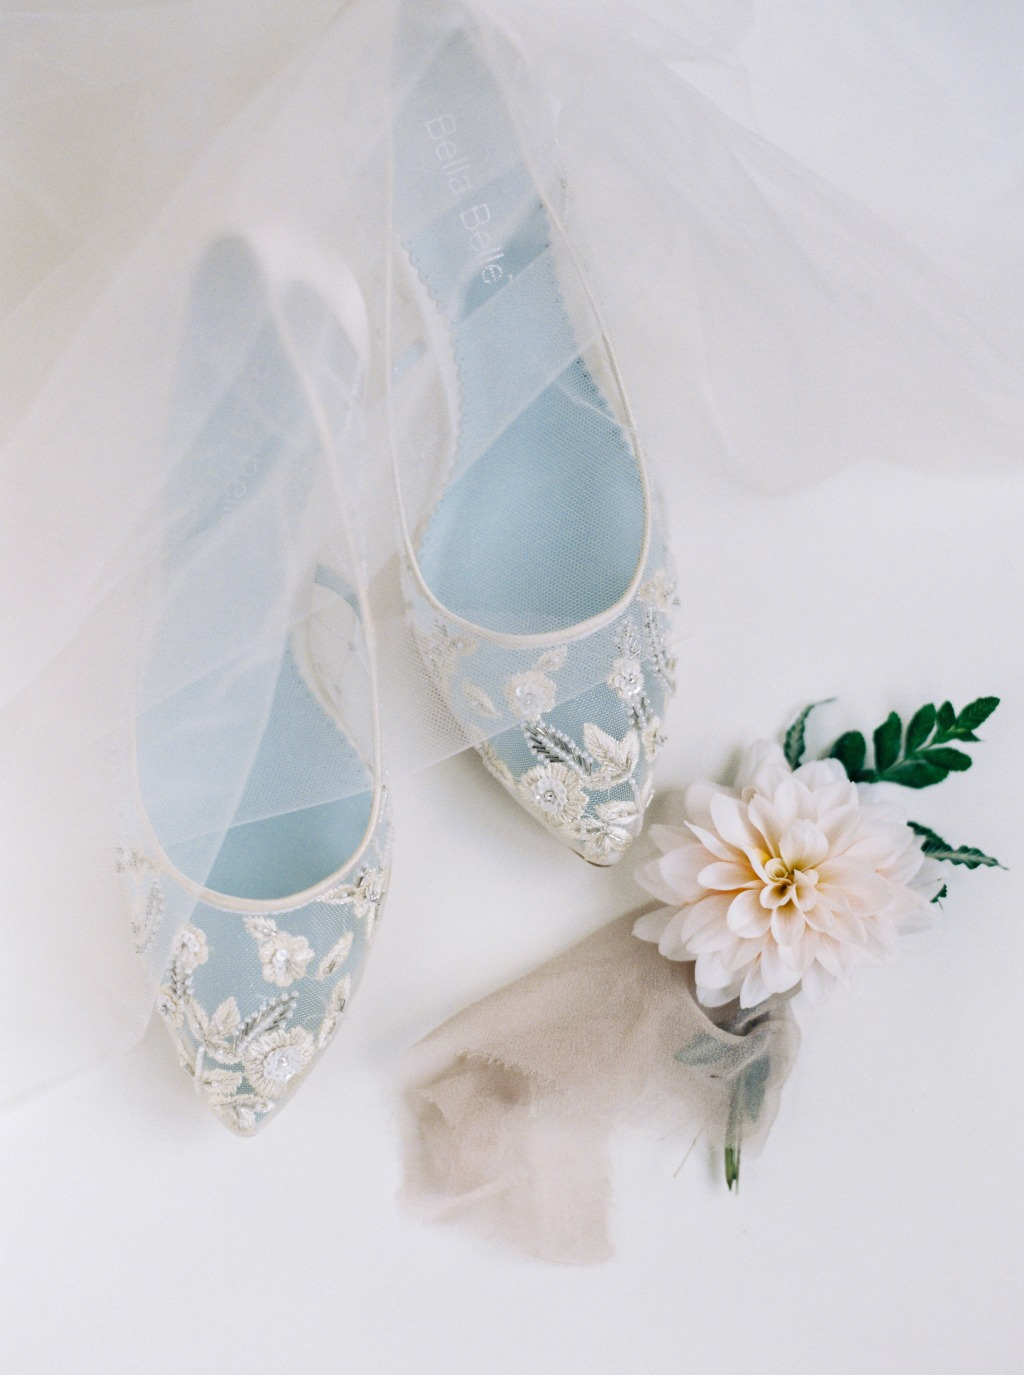 Celebrating classic, elegance and chic all in one bridal ivory heel, the Cora wedding shoe. See more at @bellabelleshoes